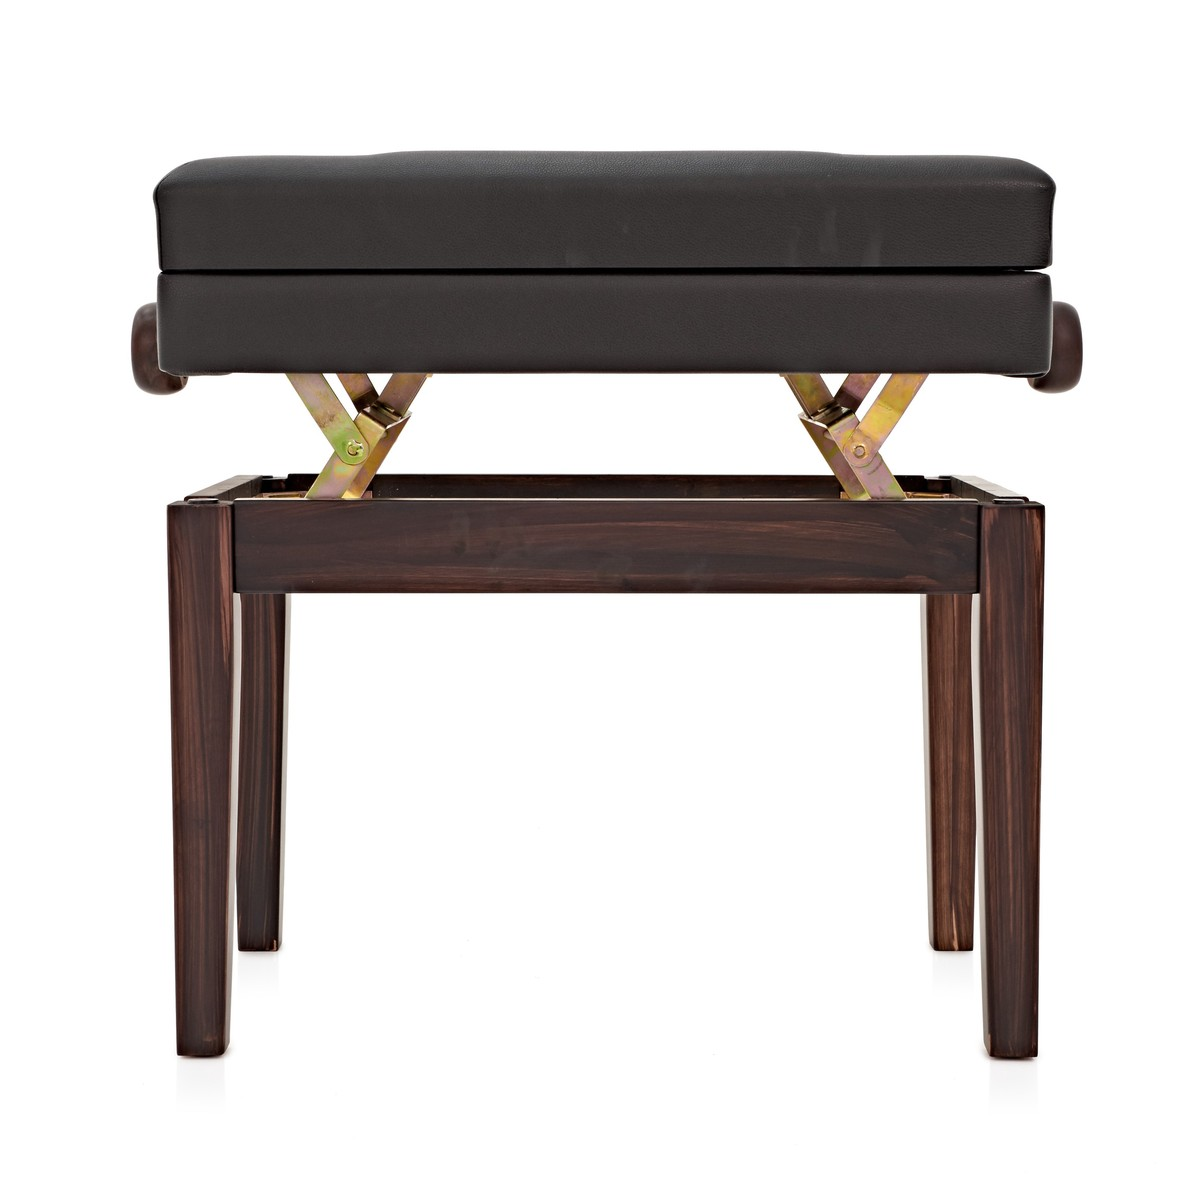 Deluxe Piano Stool with Storage by Gear4music RW  sc 1 st  Gear4music & Deluxe Piano Stool with Storage by Gear4music RW at Gear4music.com islam-shia.org